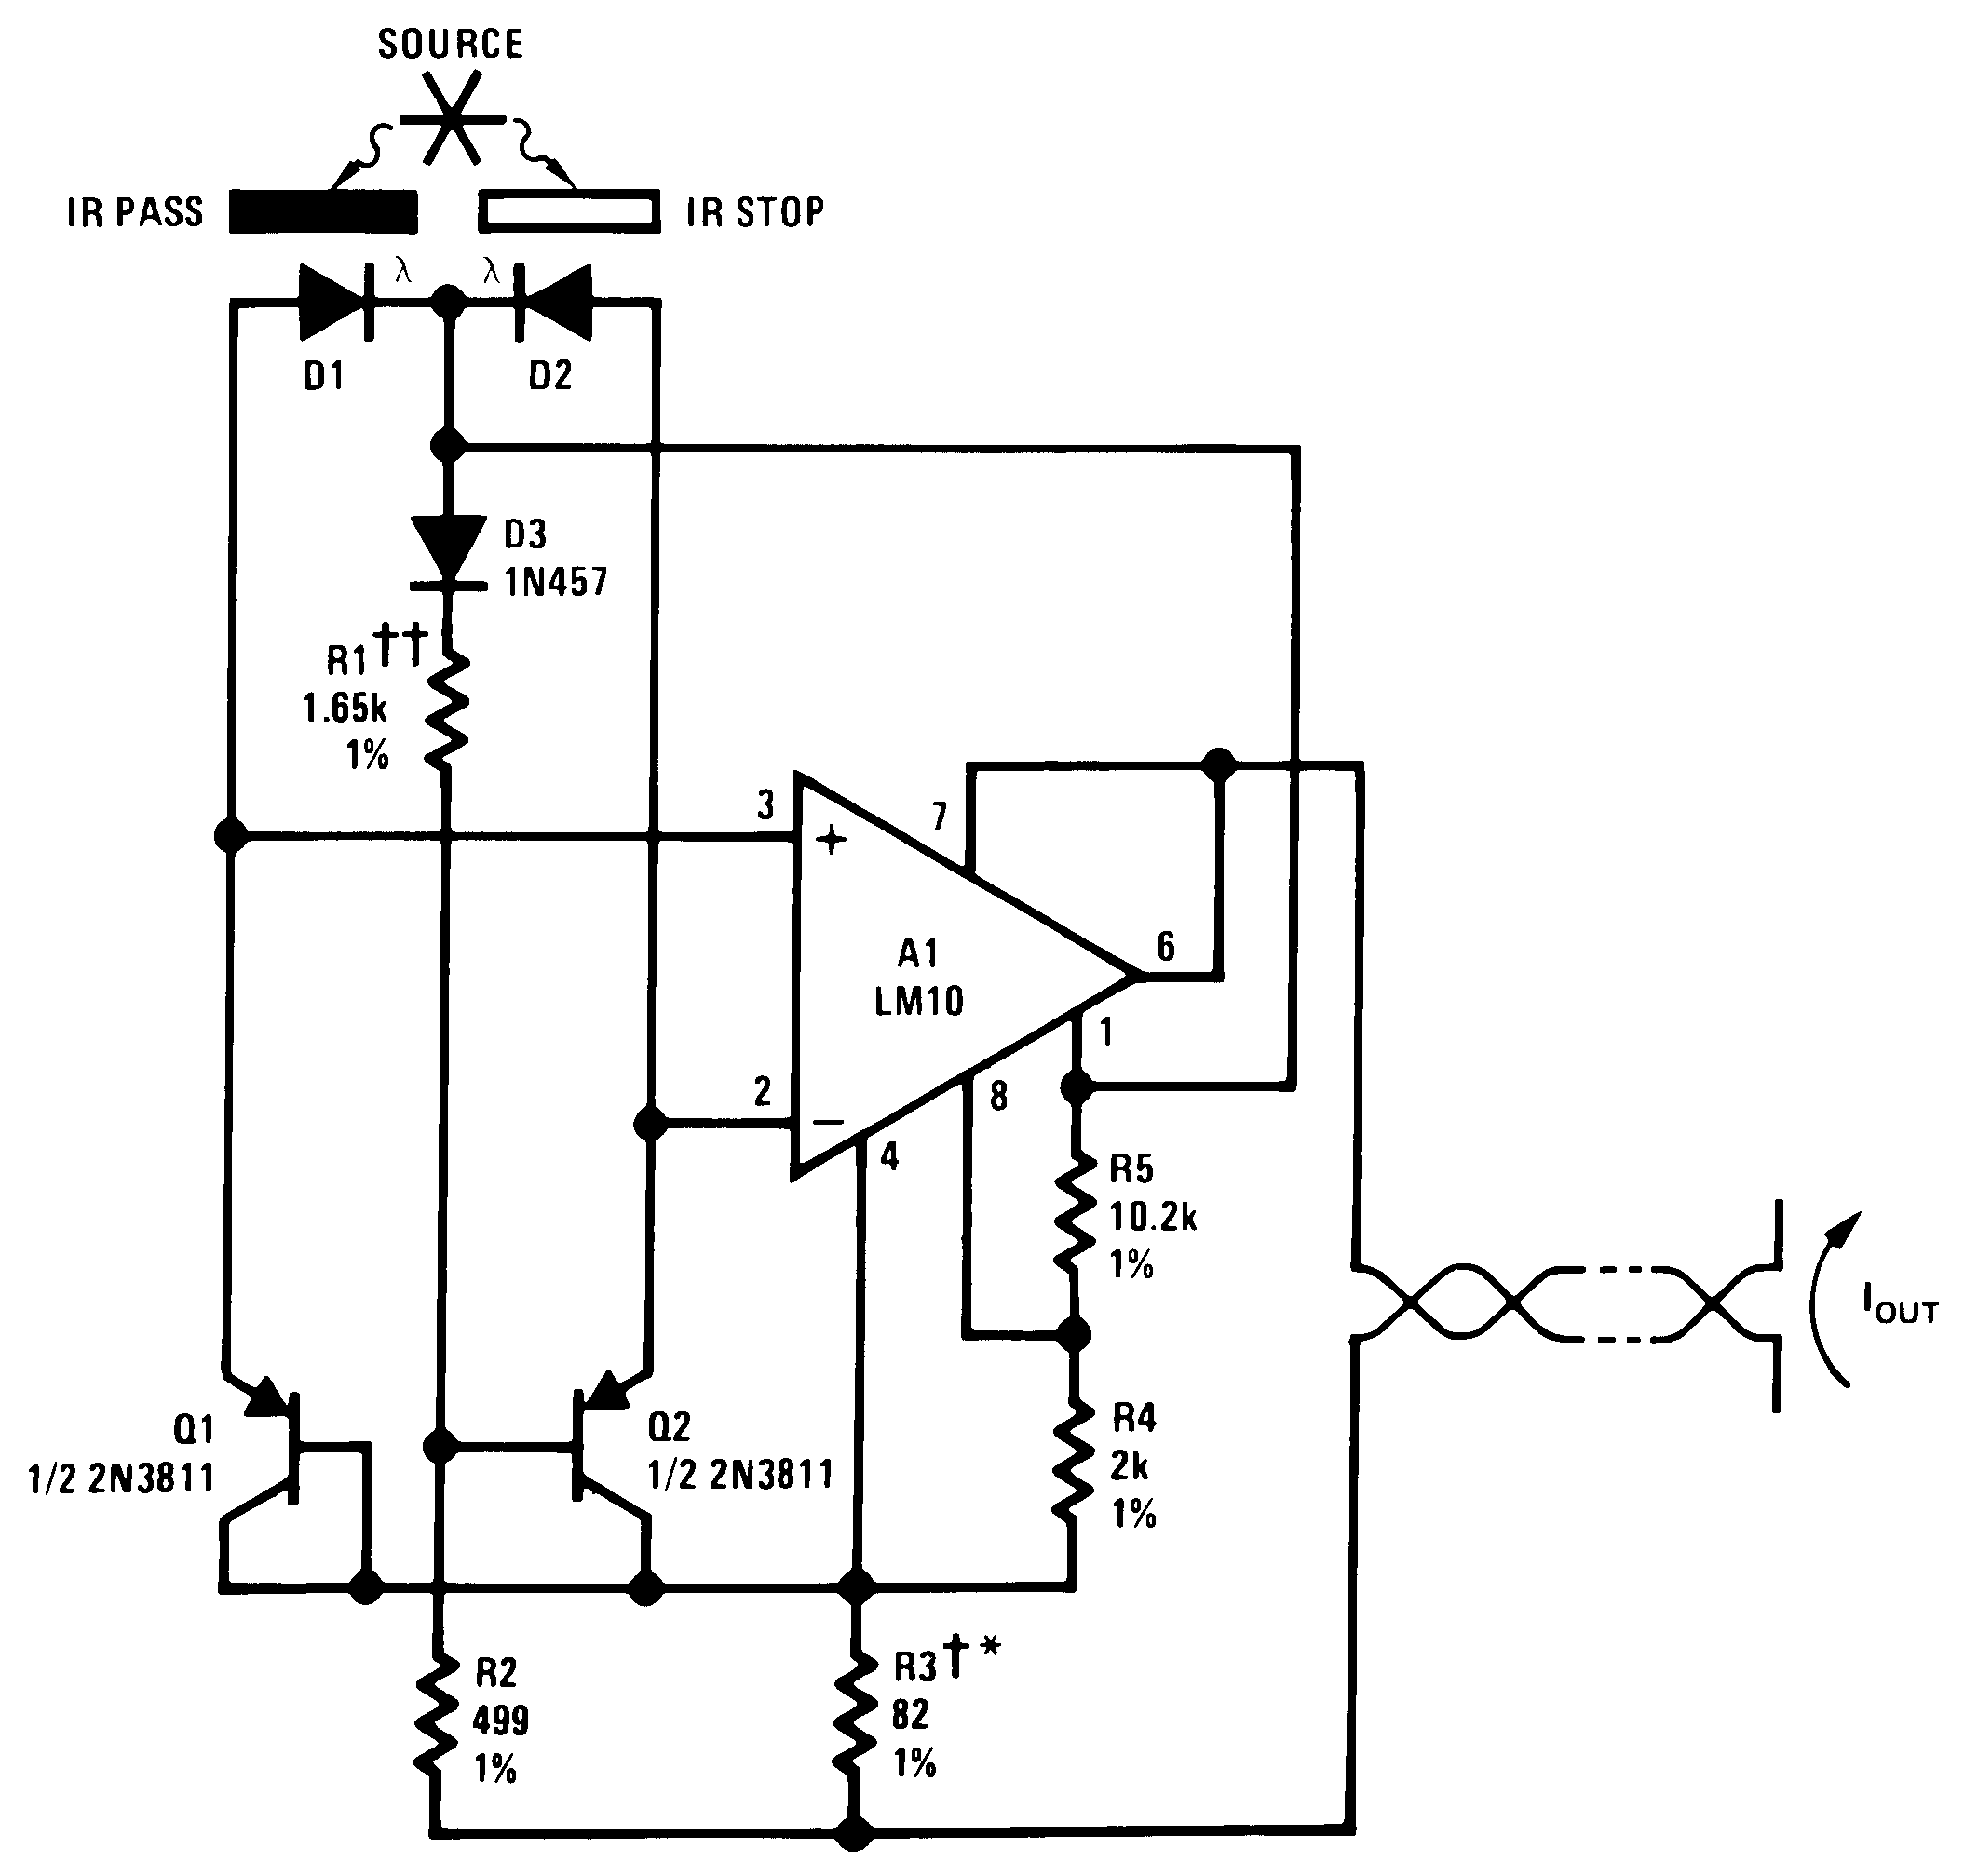 Lm10 Chevy Spectrum Wiring Diagrams 00565271